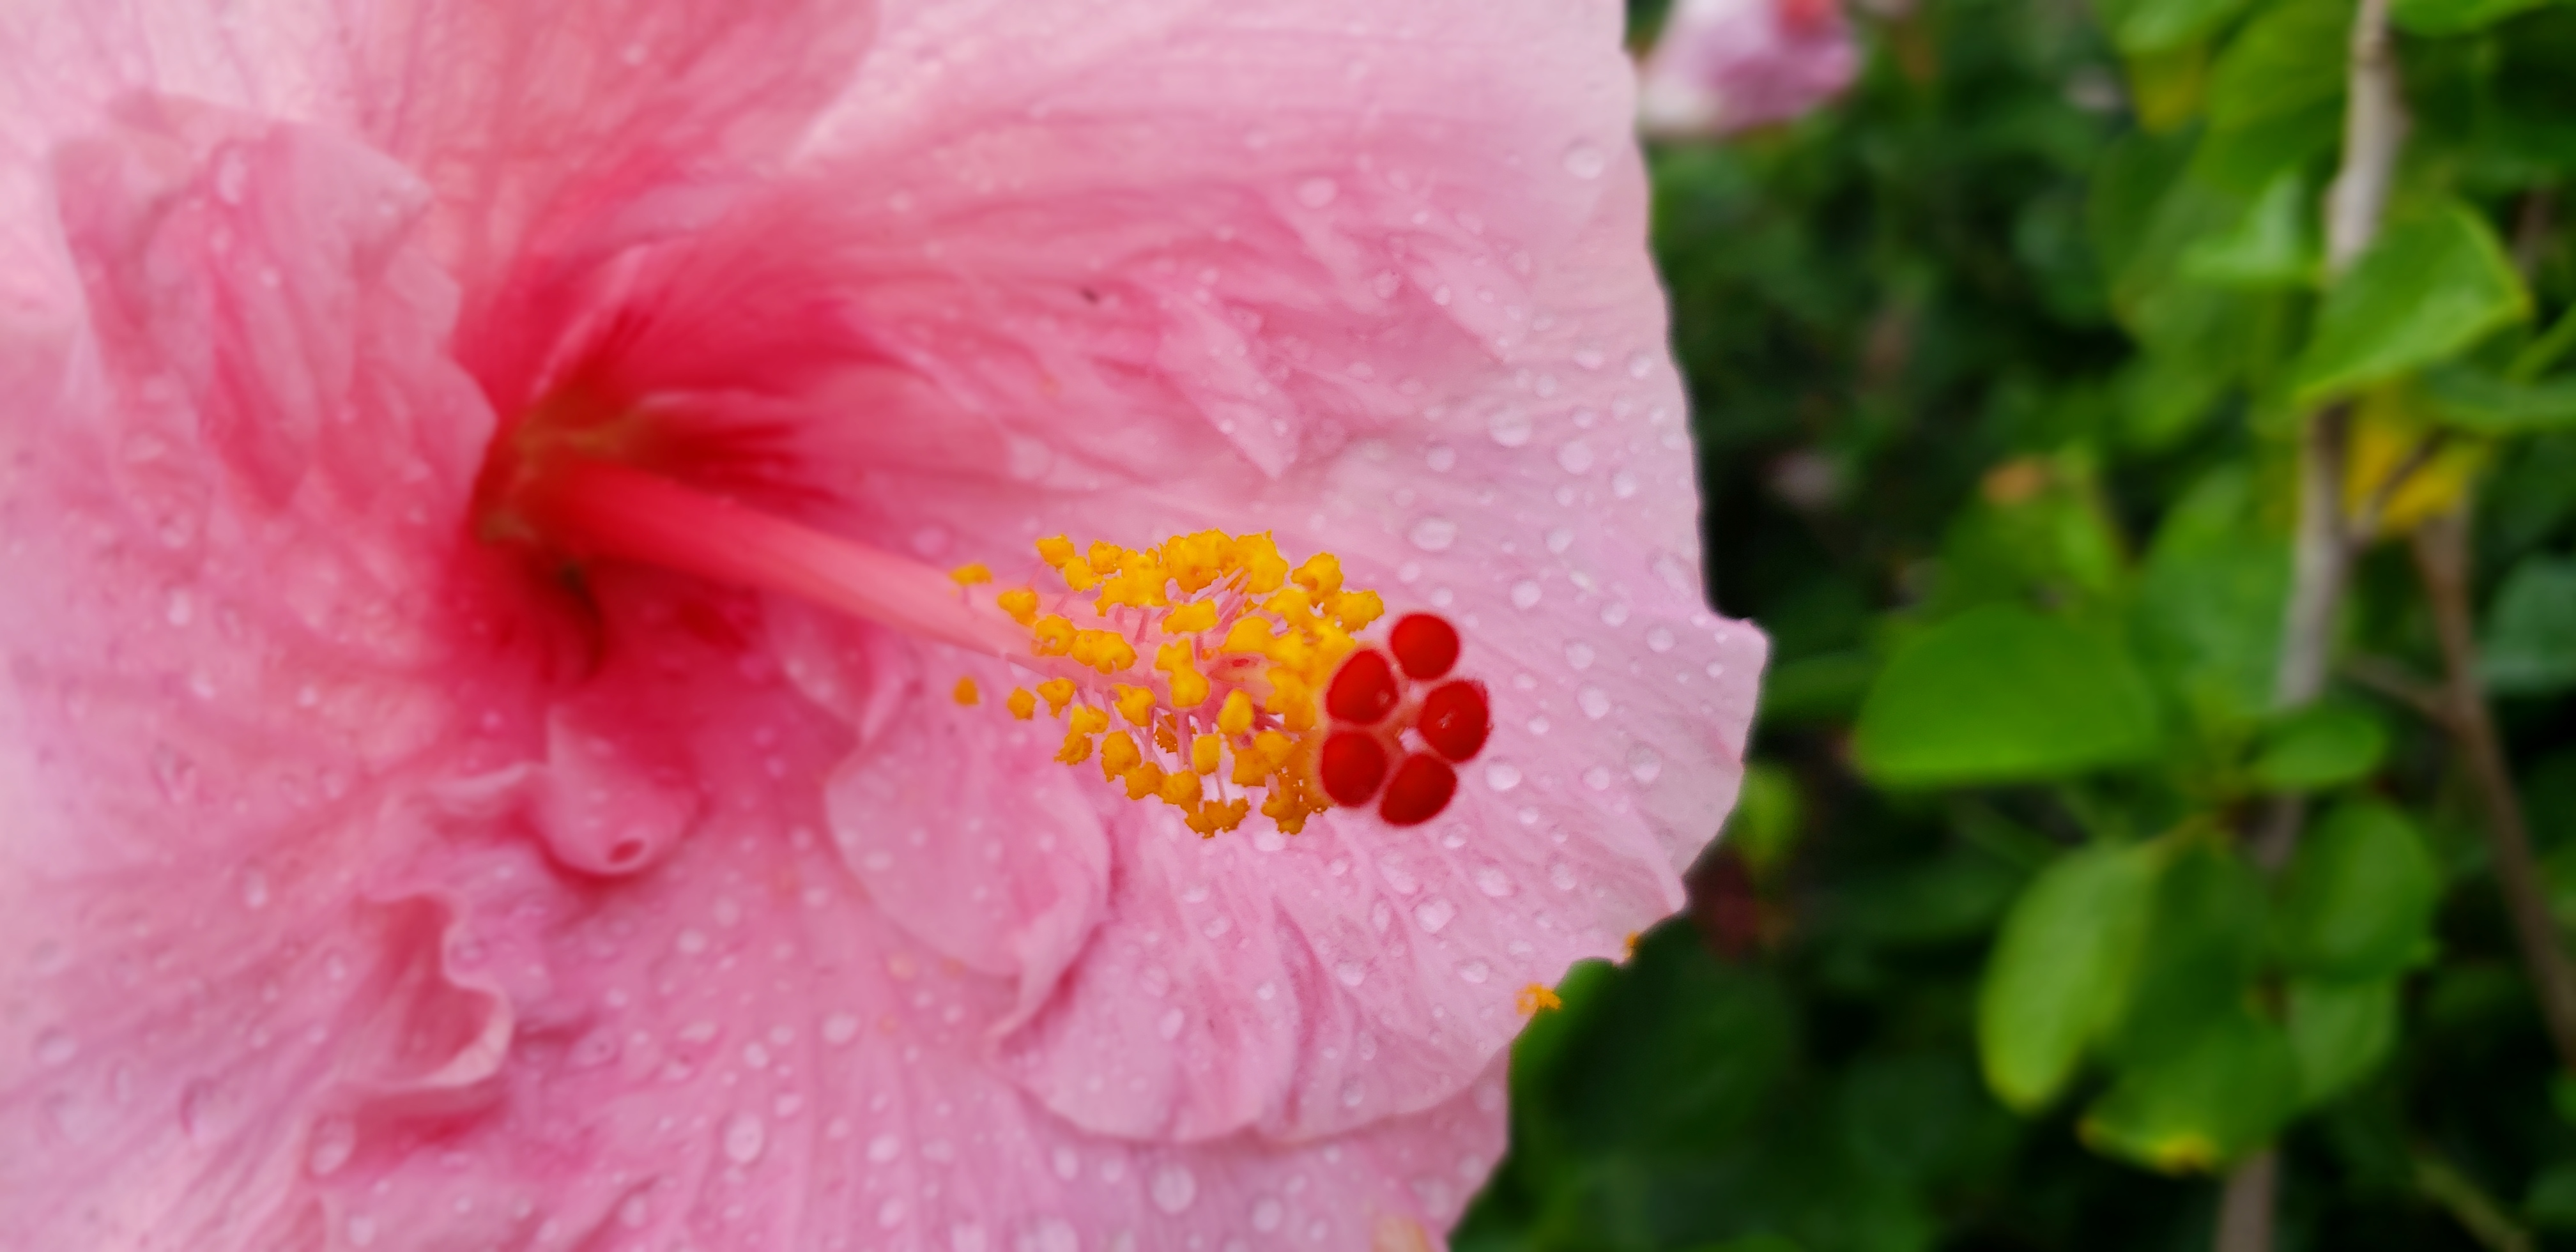 Hibiscus As A Wedding Flower The Many Variety Of Uses Wedding In